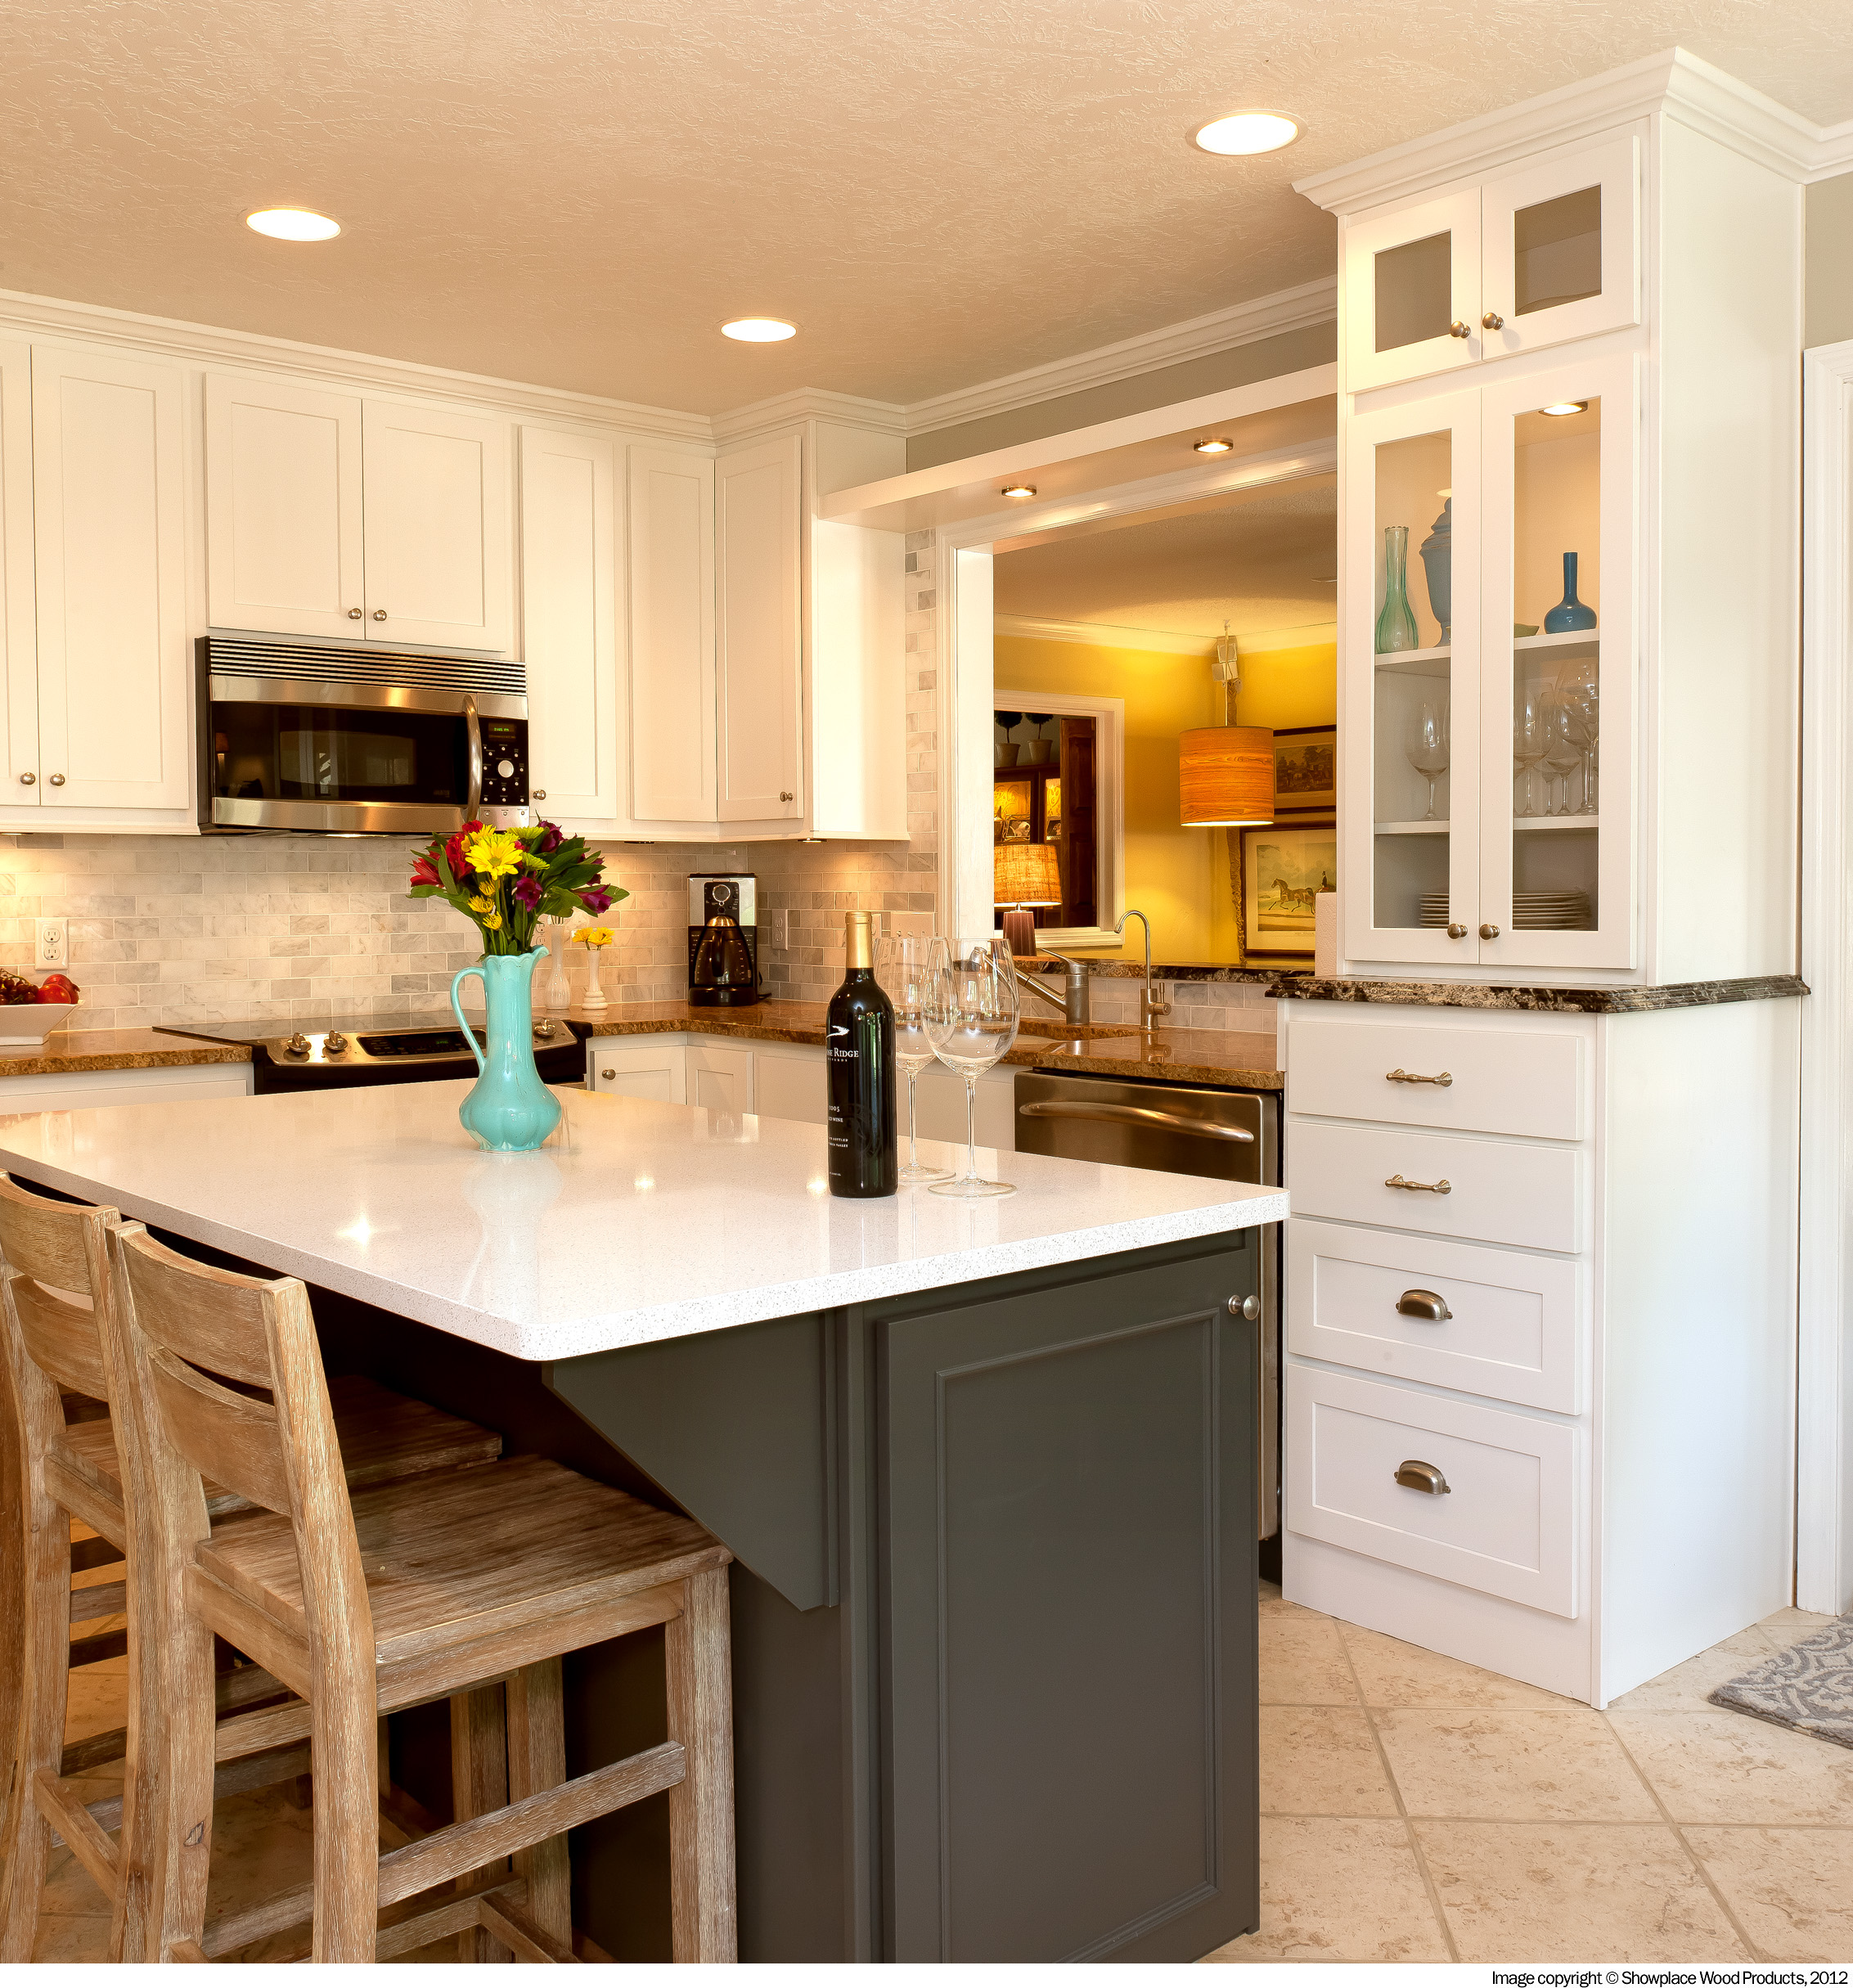 Kitchen cabinets refinishing springfield il roselawnlutheran for Cabinets before and after